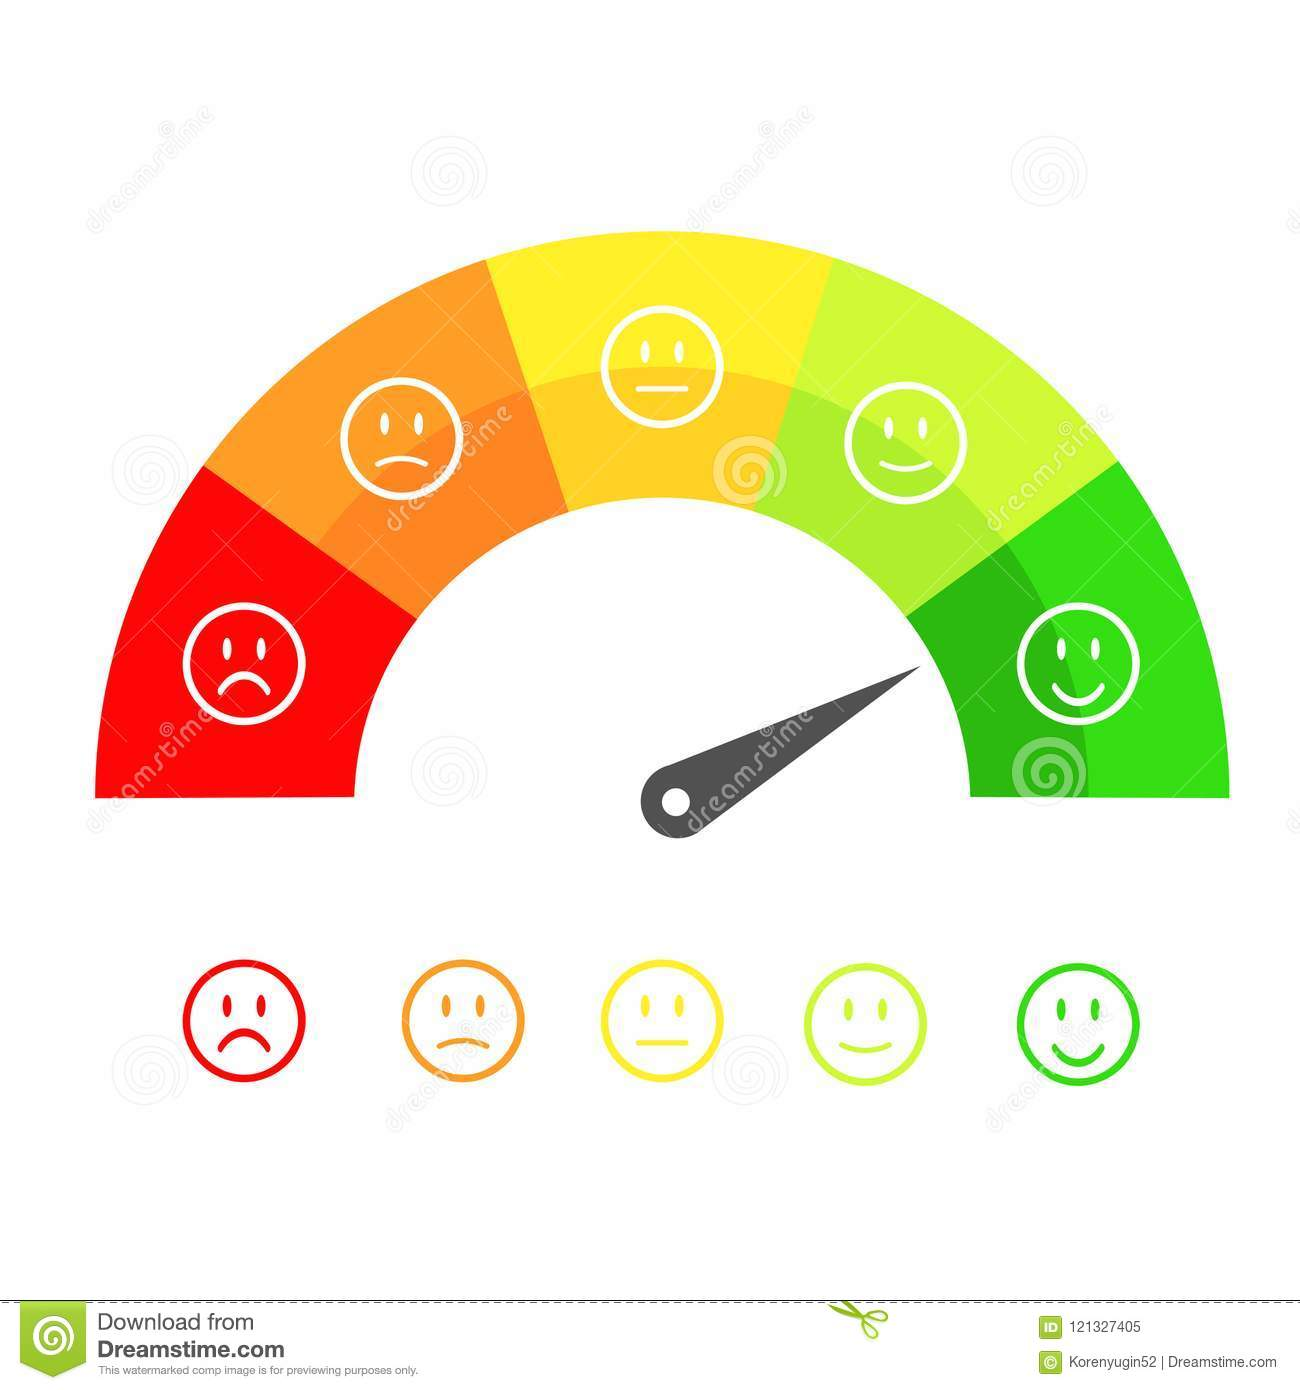 Customer satisfaction meter with different emotions, emotions sc